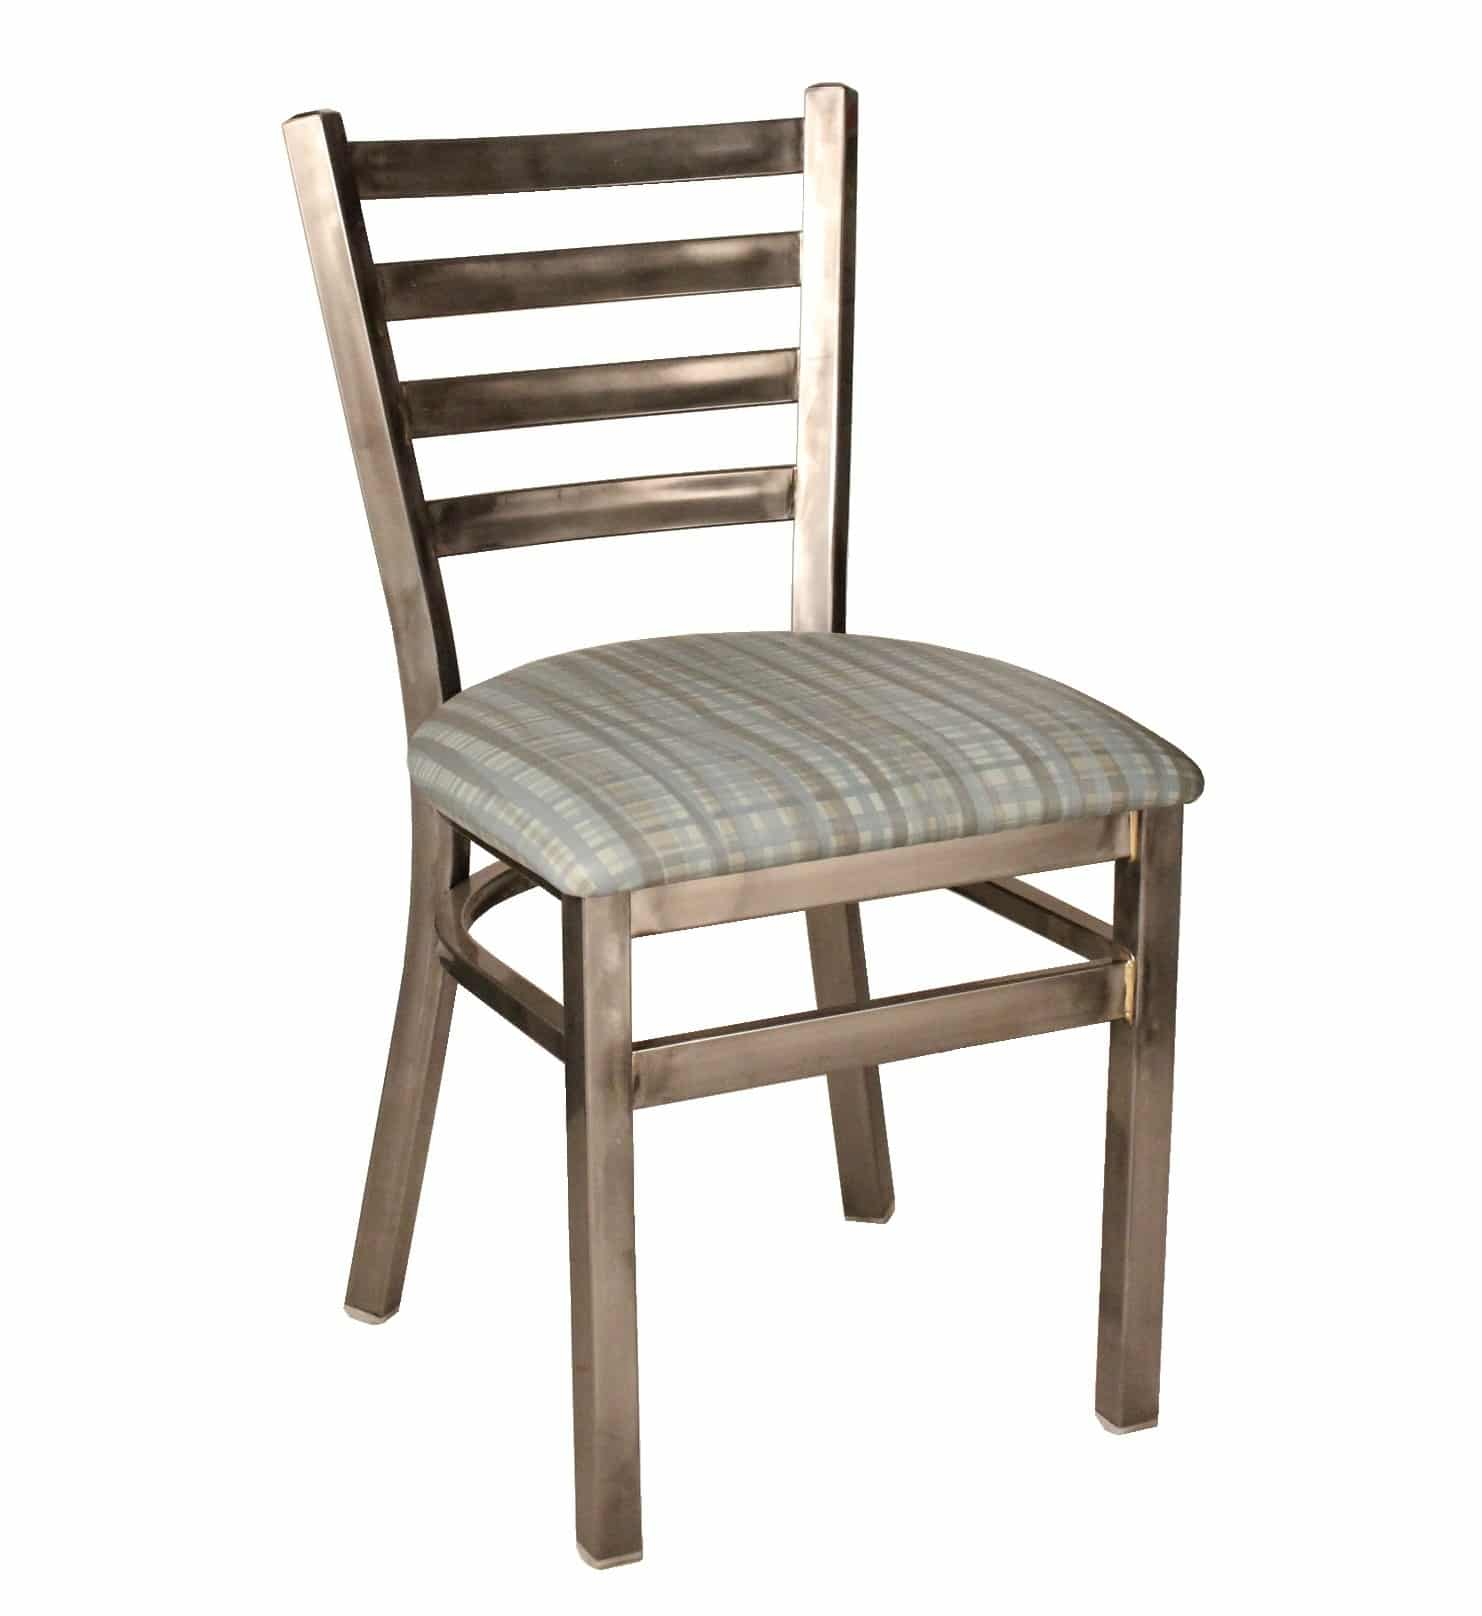 Metal Chairs Heavy Duty Ladder Back Chair Model 742 Restaurant Chairs By M